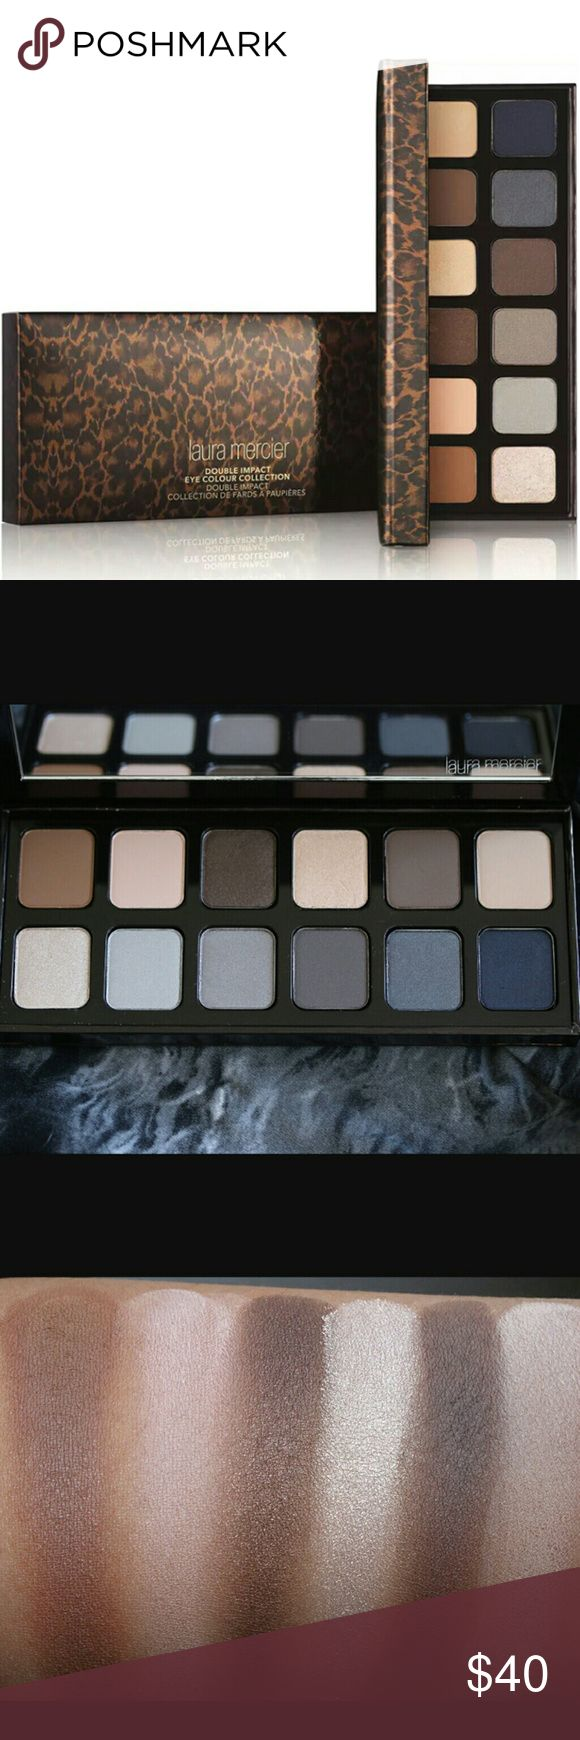 Laura Mercier Double Impact Eye Color Collection New in Box.  Never Been Used. Laura Mercier Double Impact Eye Color Collection The mirrored palette features 9 matte and 3 sateen shimmer eye shadow shades in a range from light to dark.  The versatile palette can take eyes from neutral day to sultry night.  Universally flattering, light reflecting sateen shimmer shadesadd dimension and enhance brightness. Laura Mercier Makeup Eyeshadow